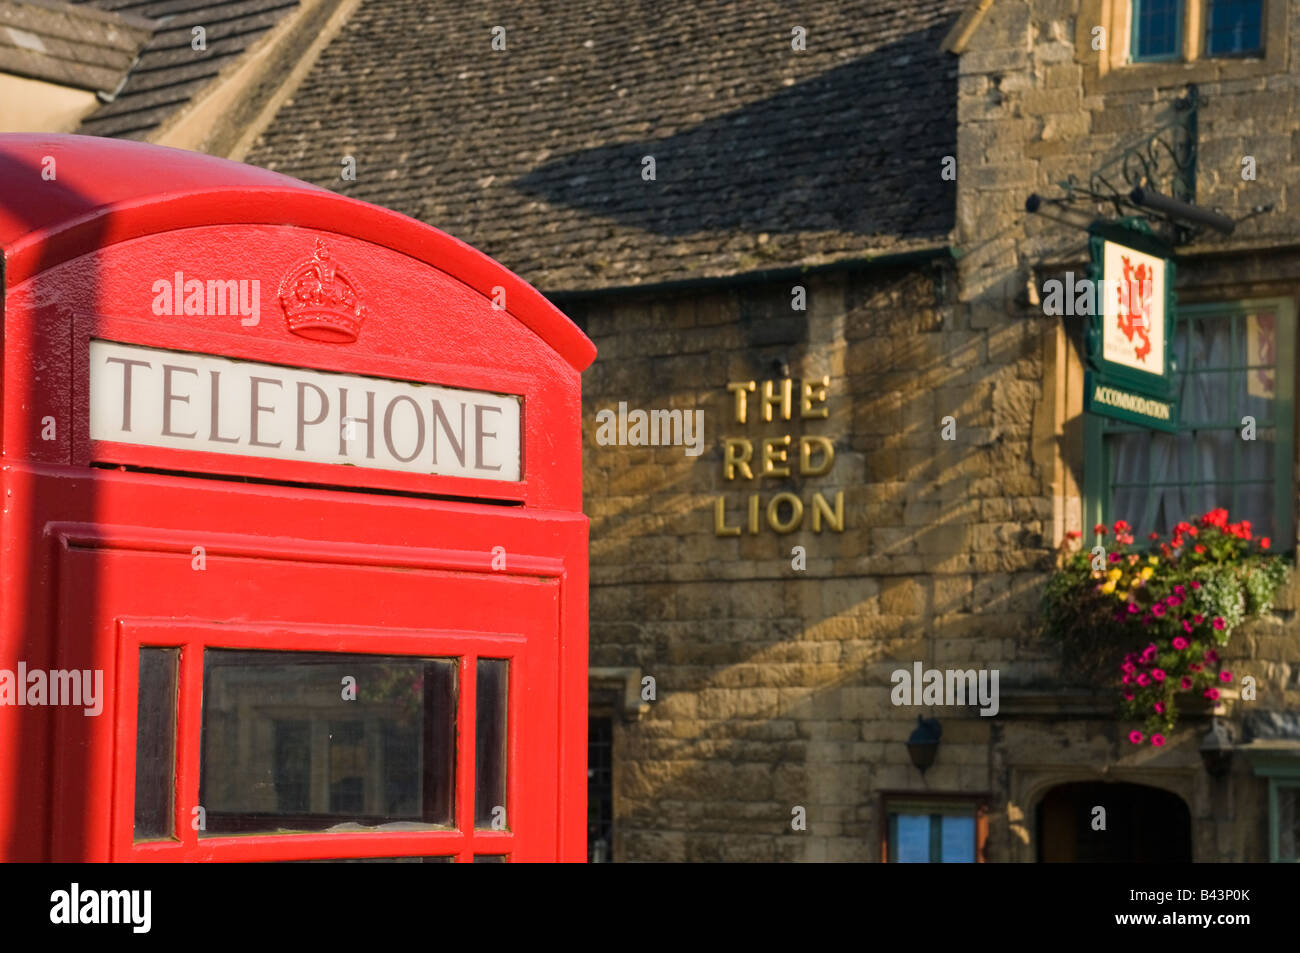 Two classic British icons a red telephone box and the Red Lion pub sign - Stock Image